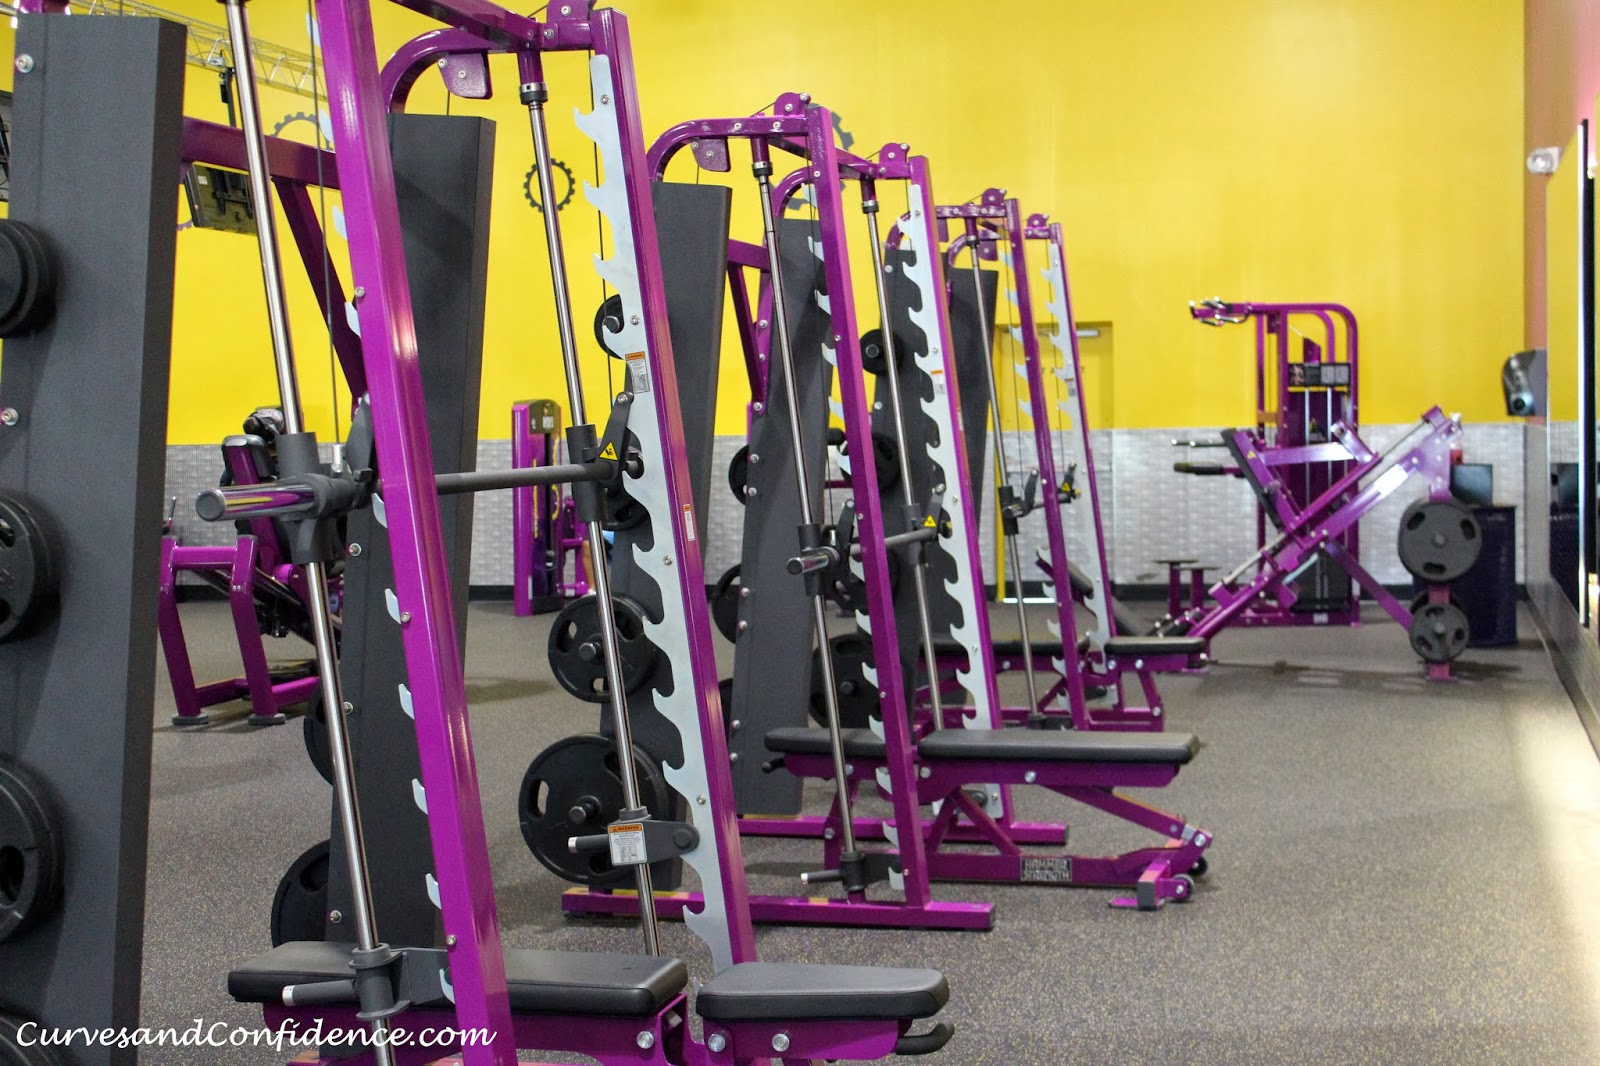 Planet Fitness power racks unsafe for squatting? : Fitness